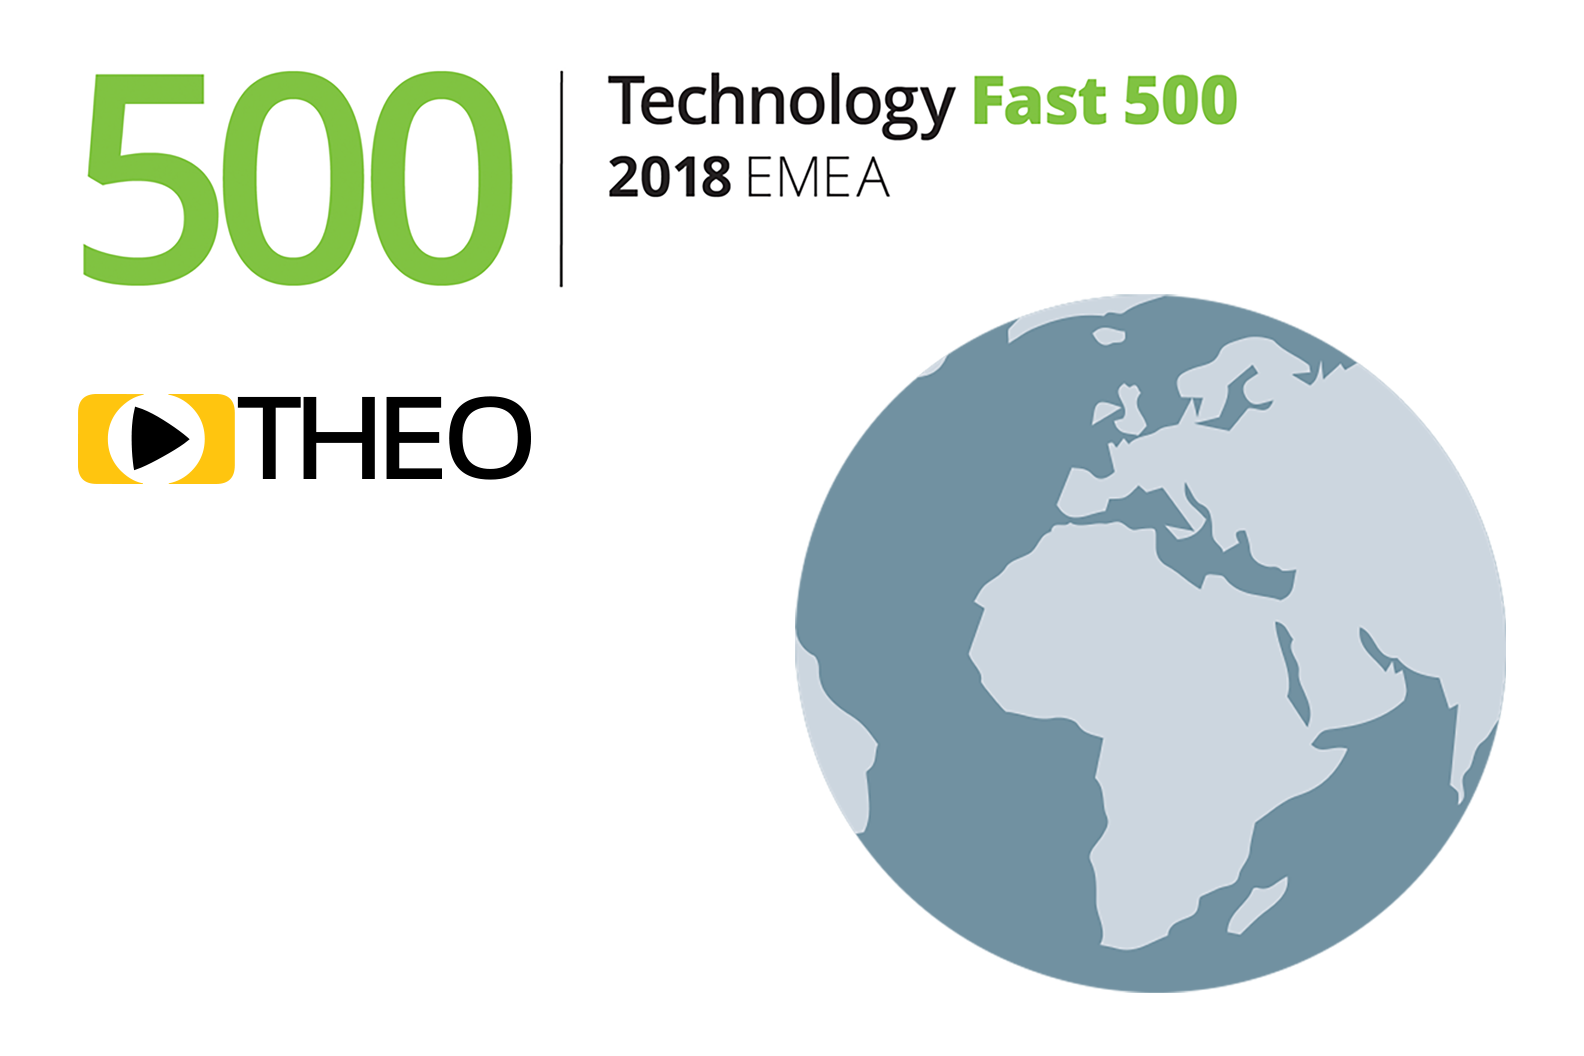 THEO Technologies ranked 47 fastest-growing company in the Deloitte 2018 Technology Fast 500 EMEA List.